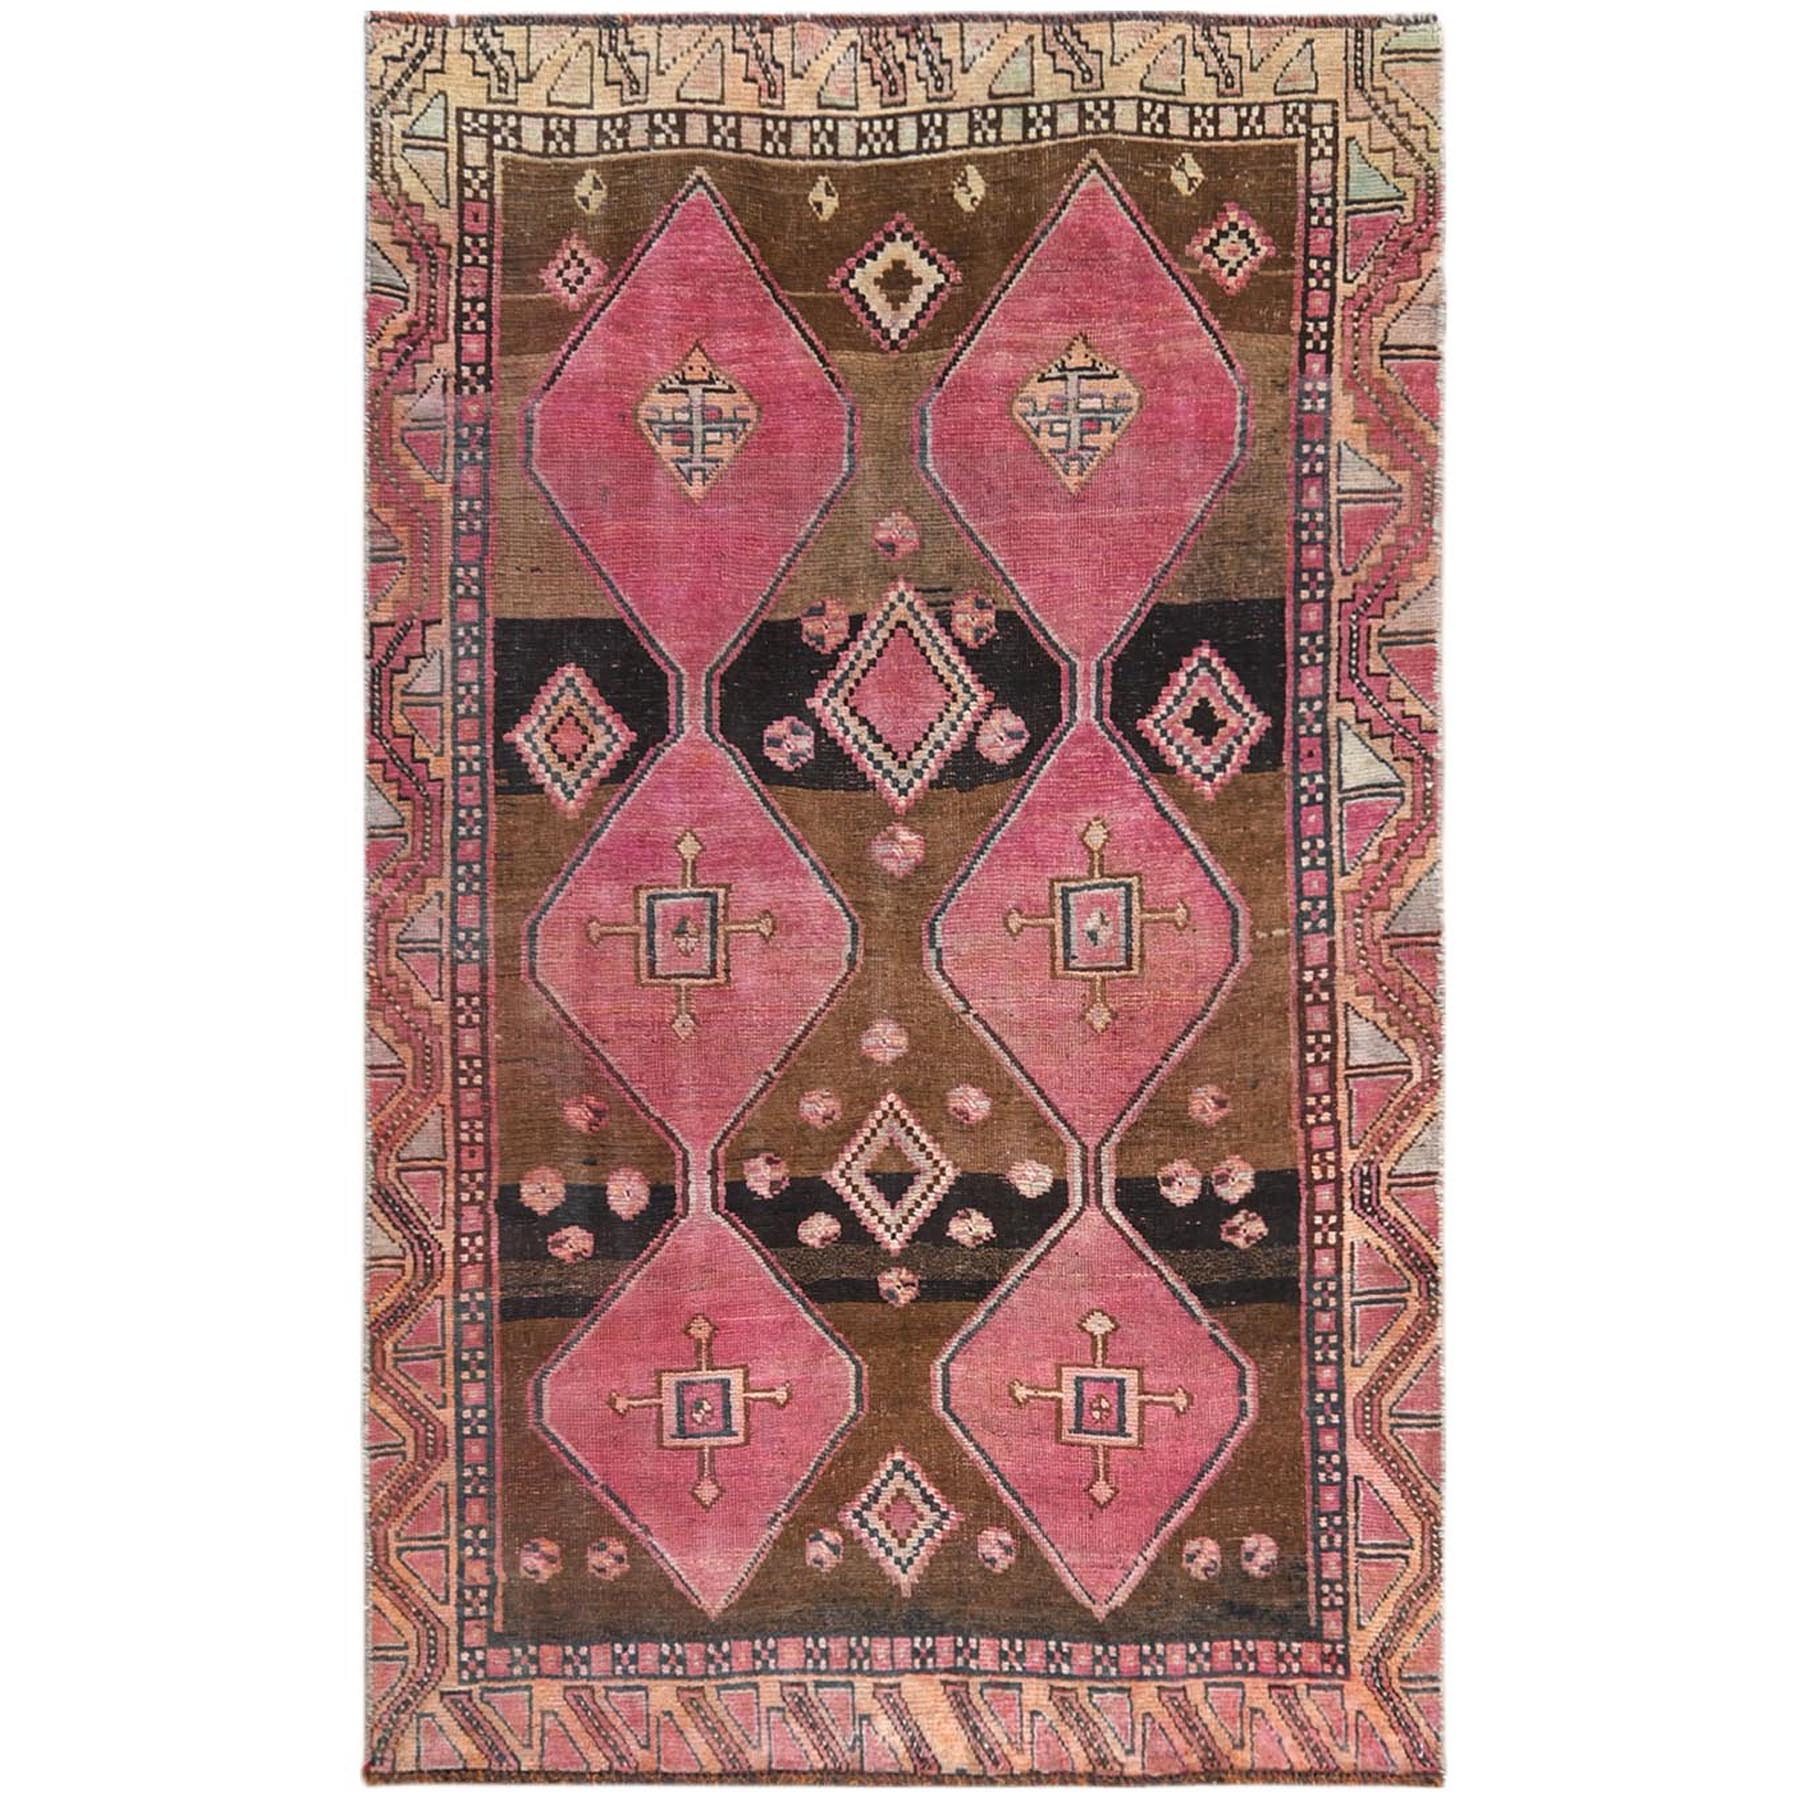 Fetneh Collection And Vintage Overdyed Collection Hand Knotted Brown Rug No: 1121238